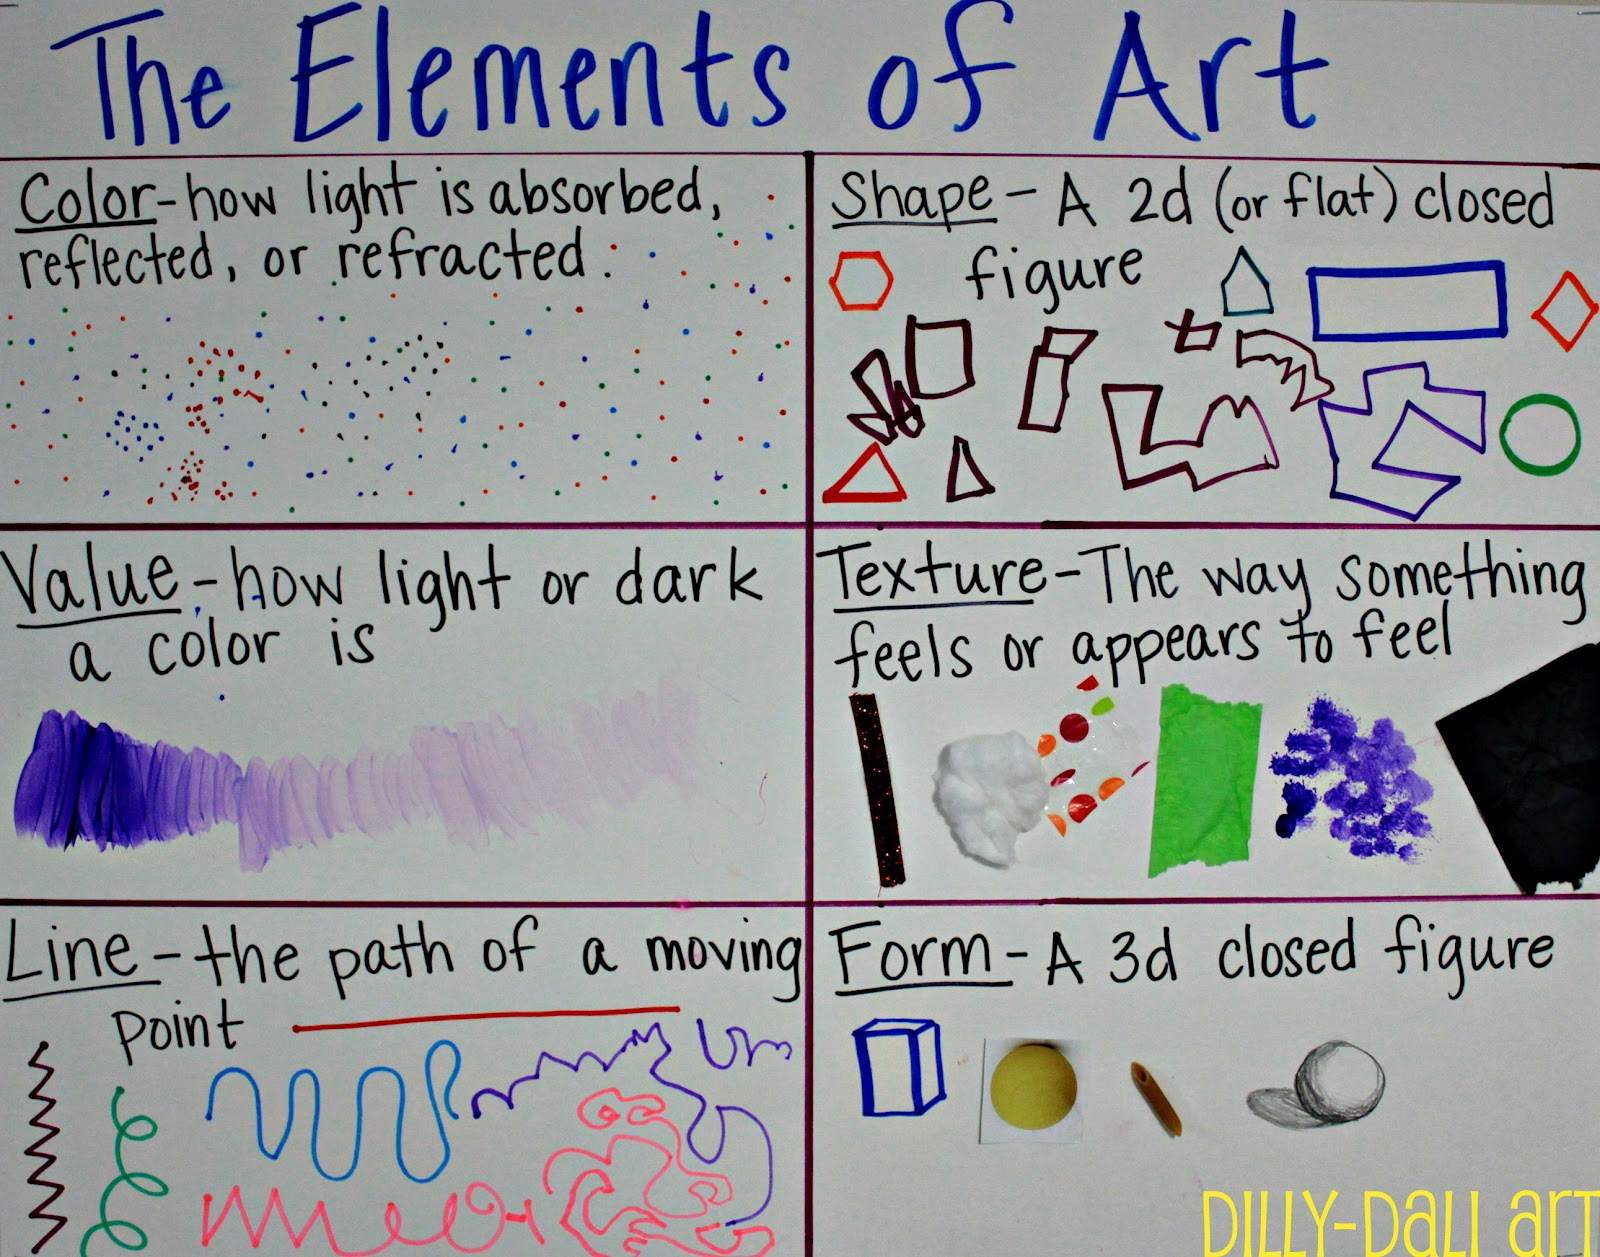 7 Elements Of Art Examples : Dilly dali art elements of poster